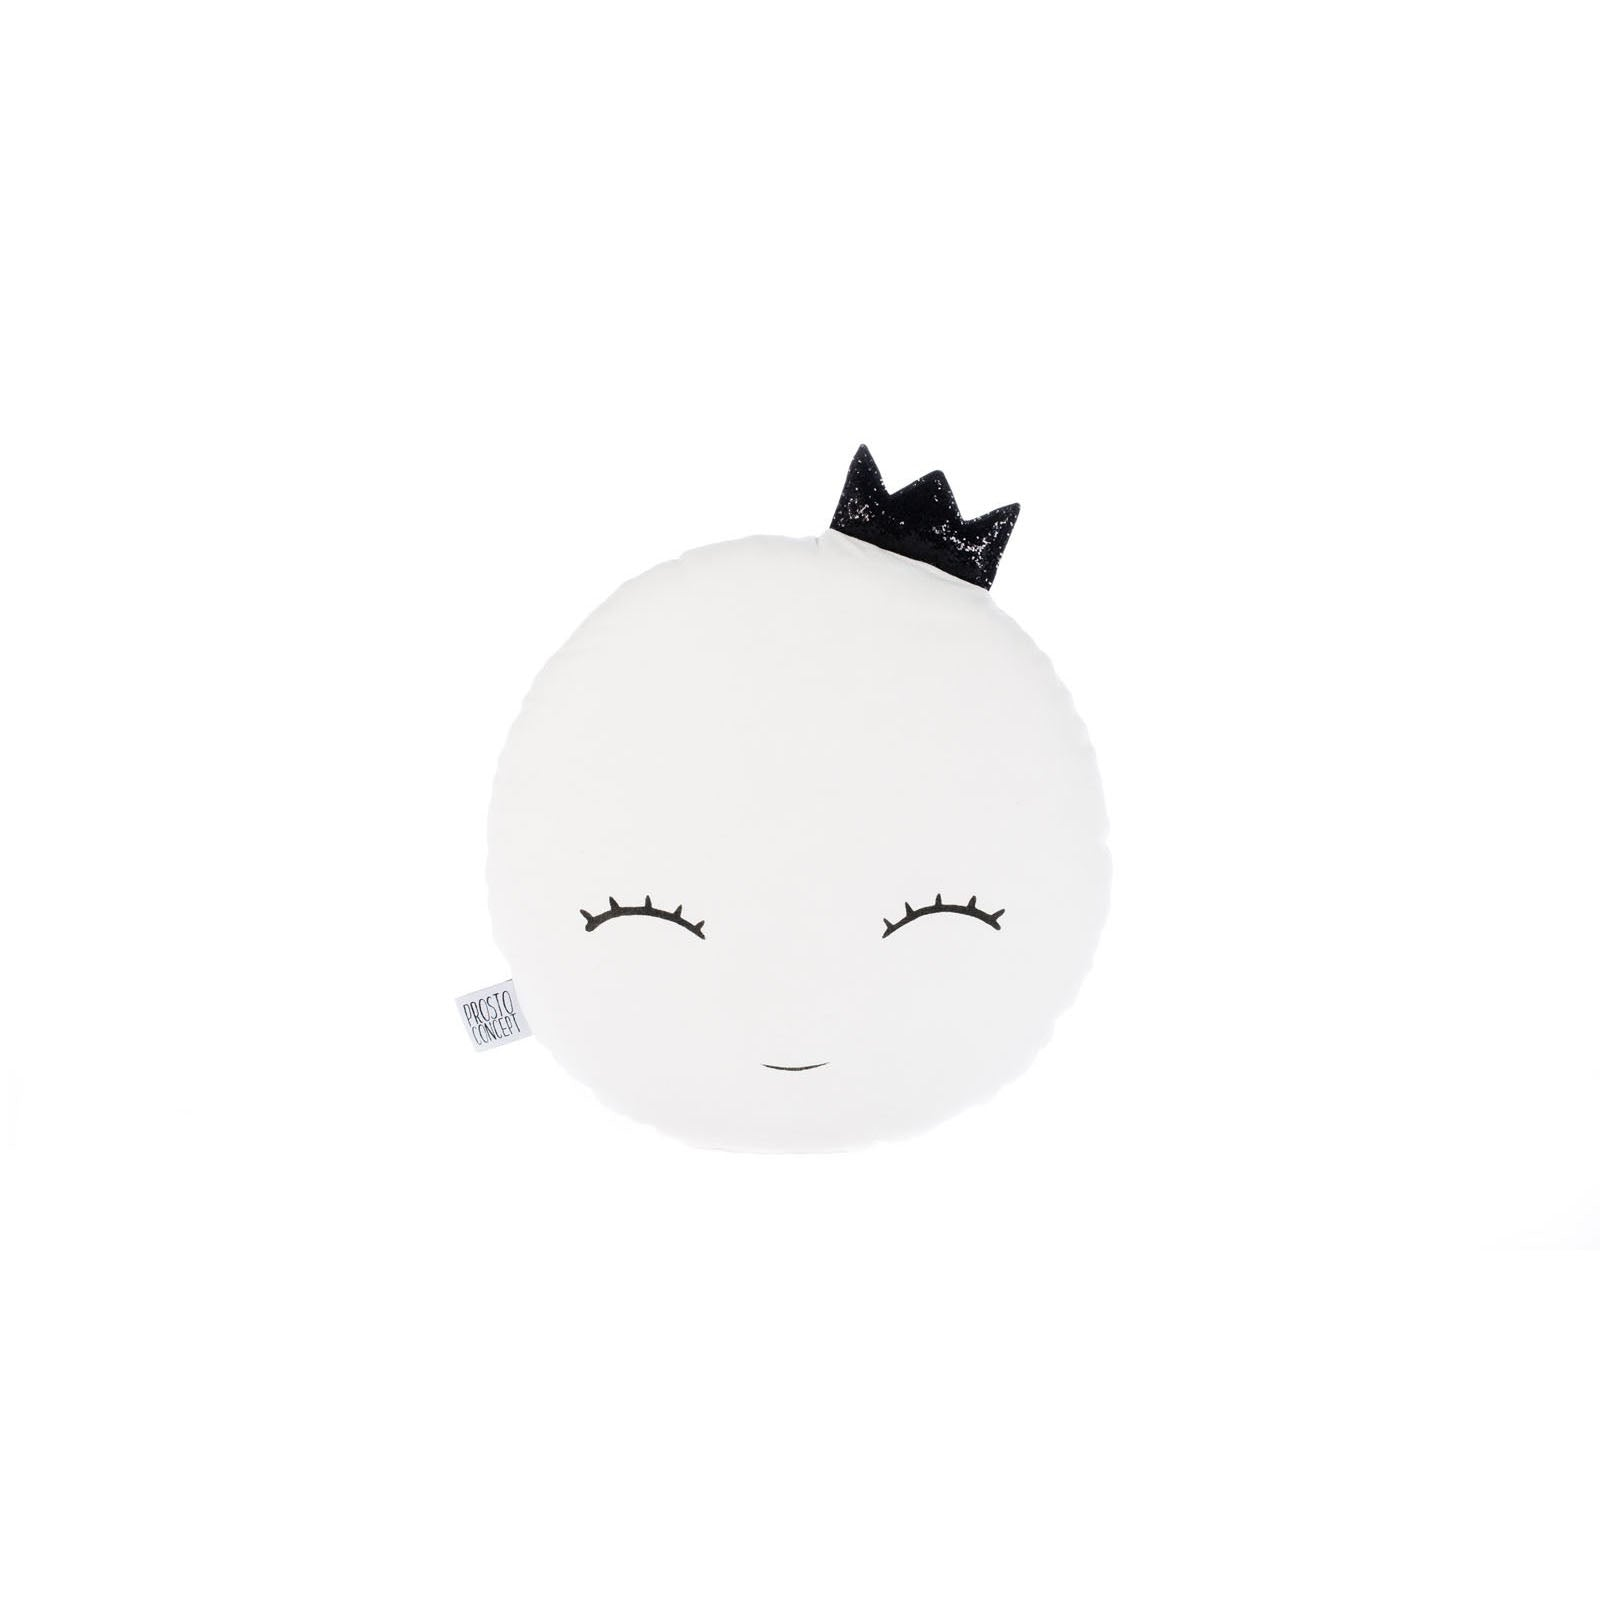 SMILING FULL MOON PILLOW WITH BLACK CROWN